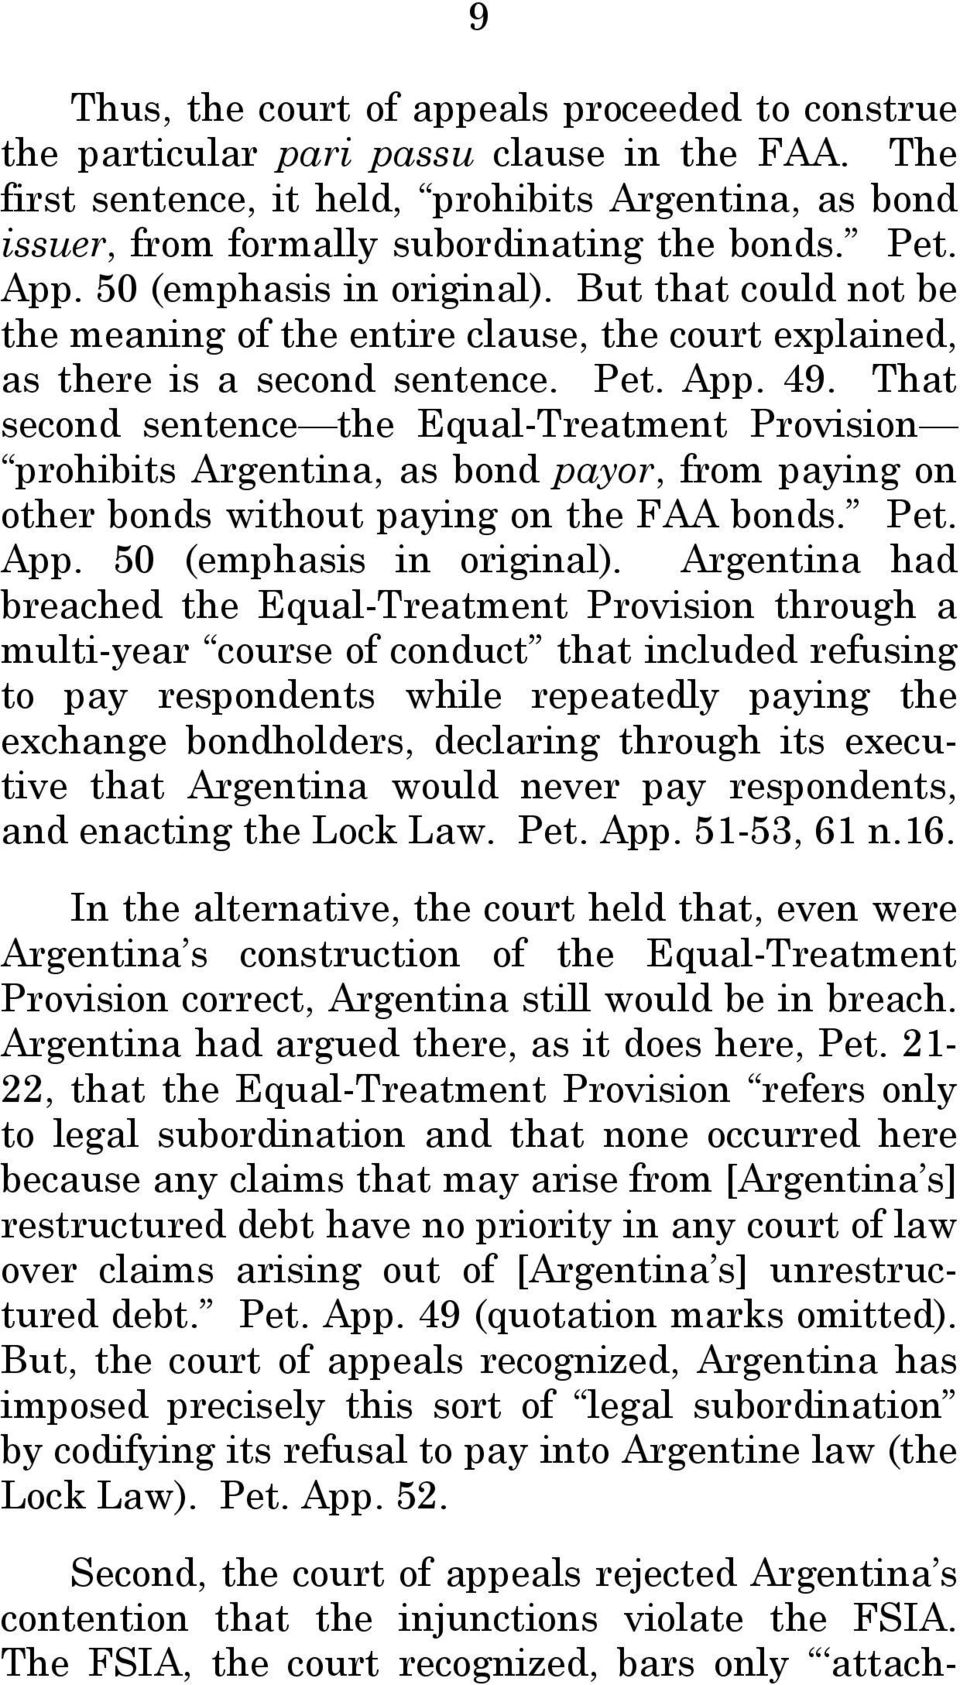 That second sentence the Equal-Treatment Provision prohibits Argentina, as bond payor, from paying on other bonds without paying on the FAA bonds. Pet. App. 50 (emphasis in original).